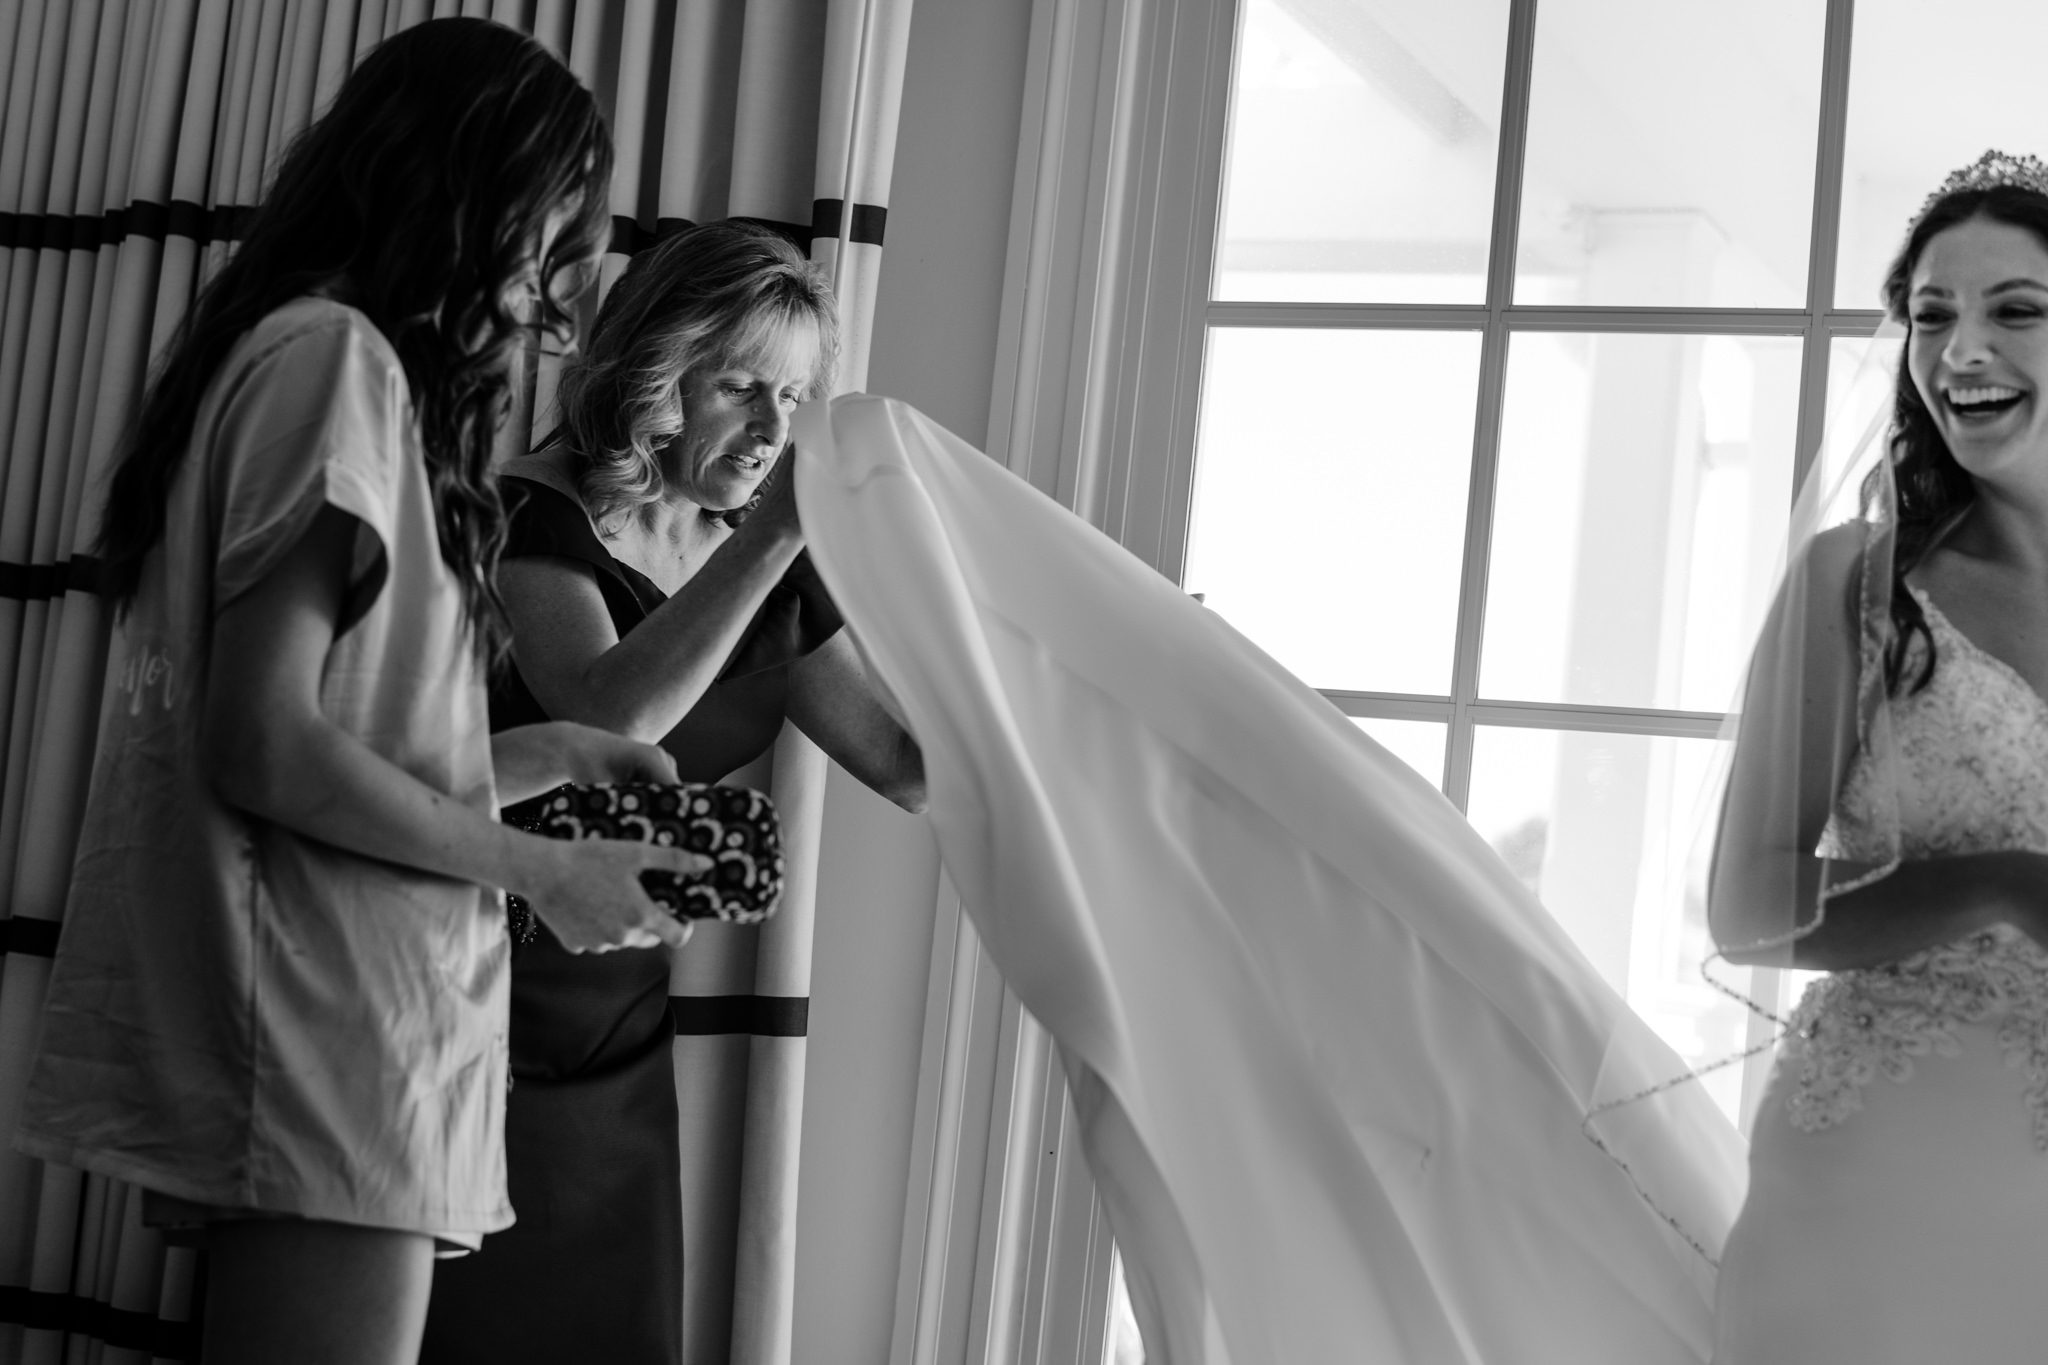 Woman holding bride's vail before wedding in key west.